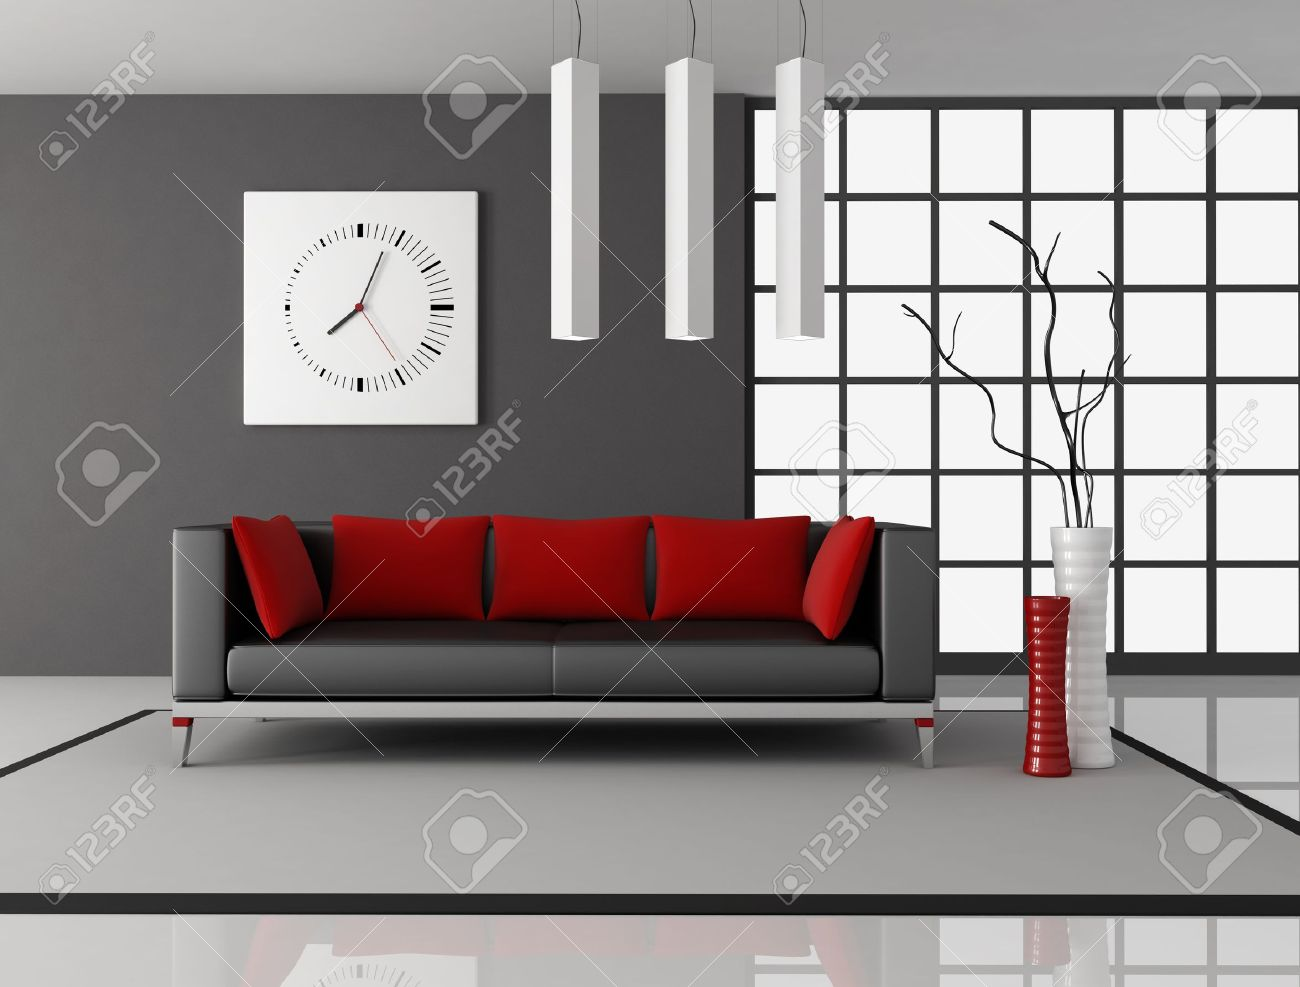 Black And Red Living Room With Leather Couch With Pillow   Rendering Stock  Photo   9276037